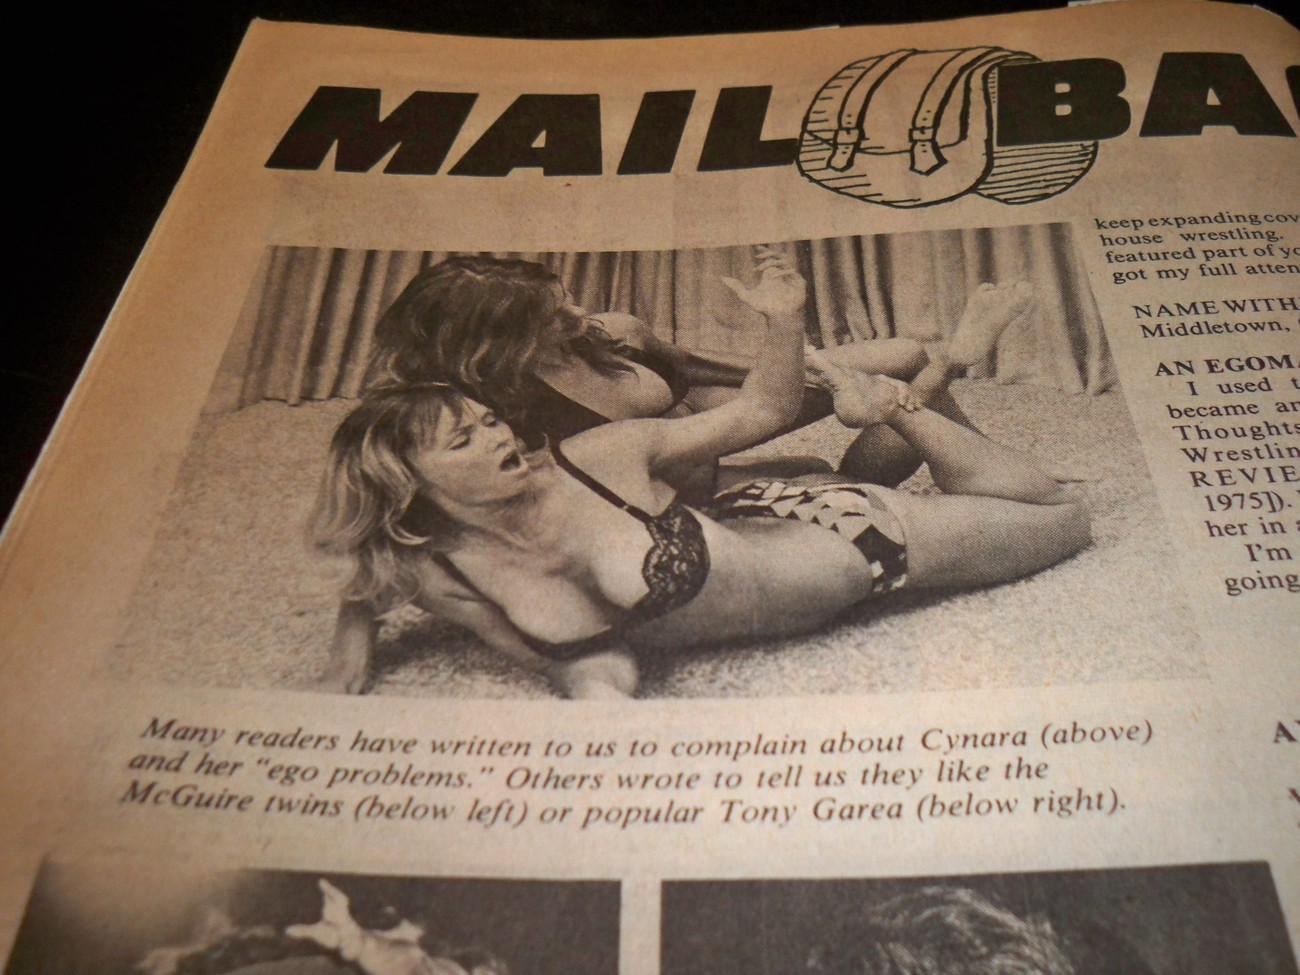 Apartment Wrestling Girls http://www.bonanza.com/listings/Sports-Review-Wrestling-Magazine-September-1975-Apartment-Wrestling-Women-WWF/90483527